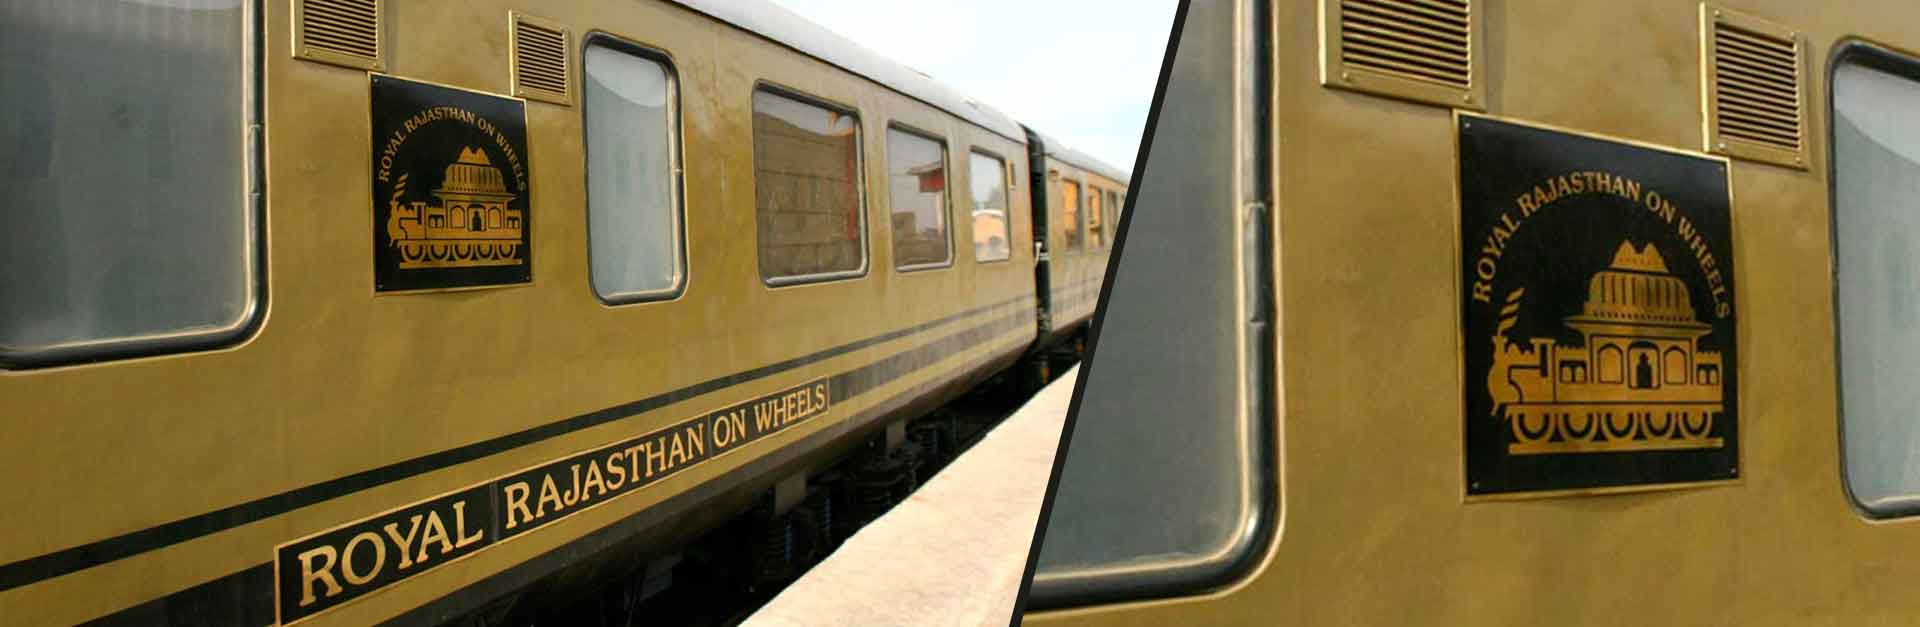 royal rajasthan on wheels fare